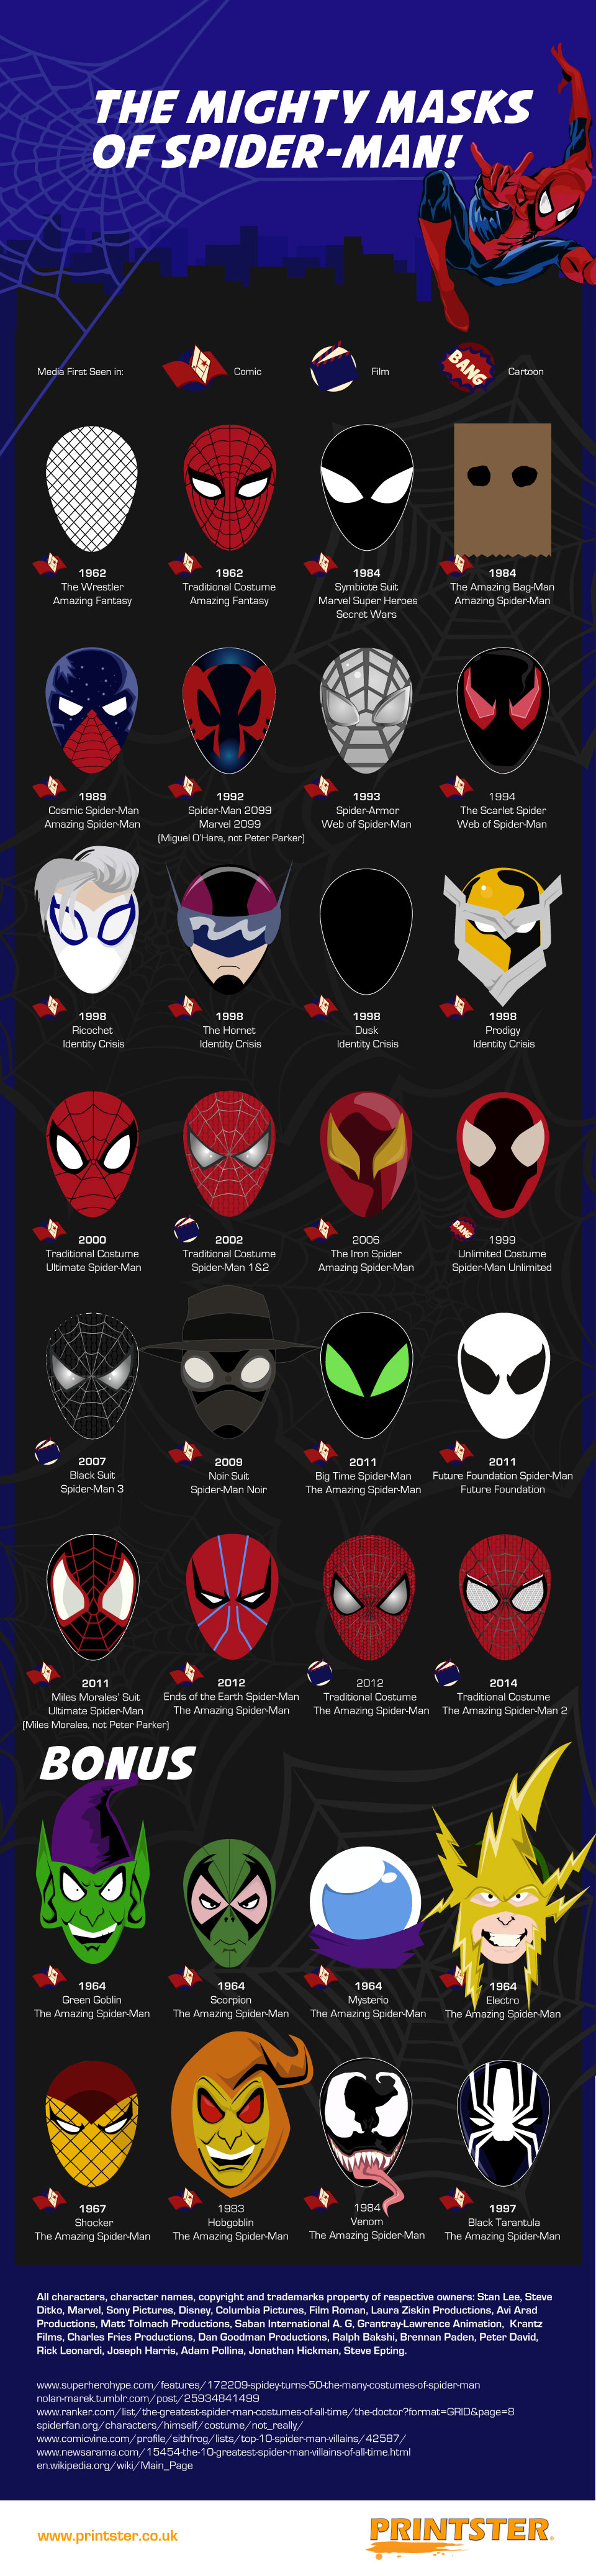 Spider Man Masks Through Time